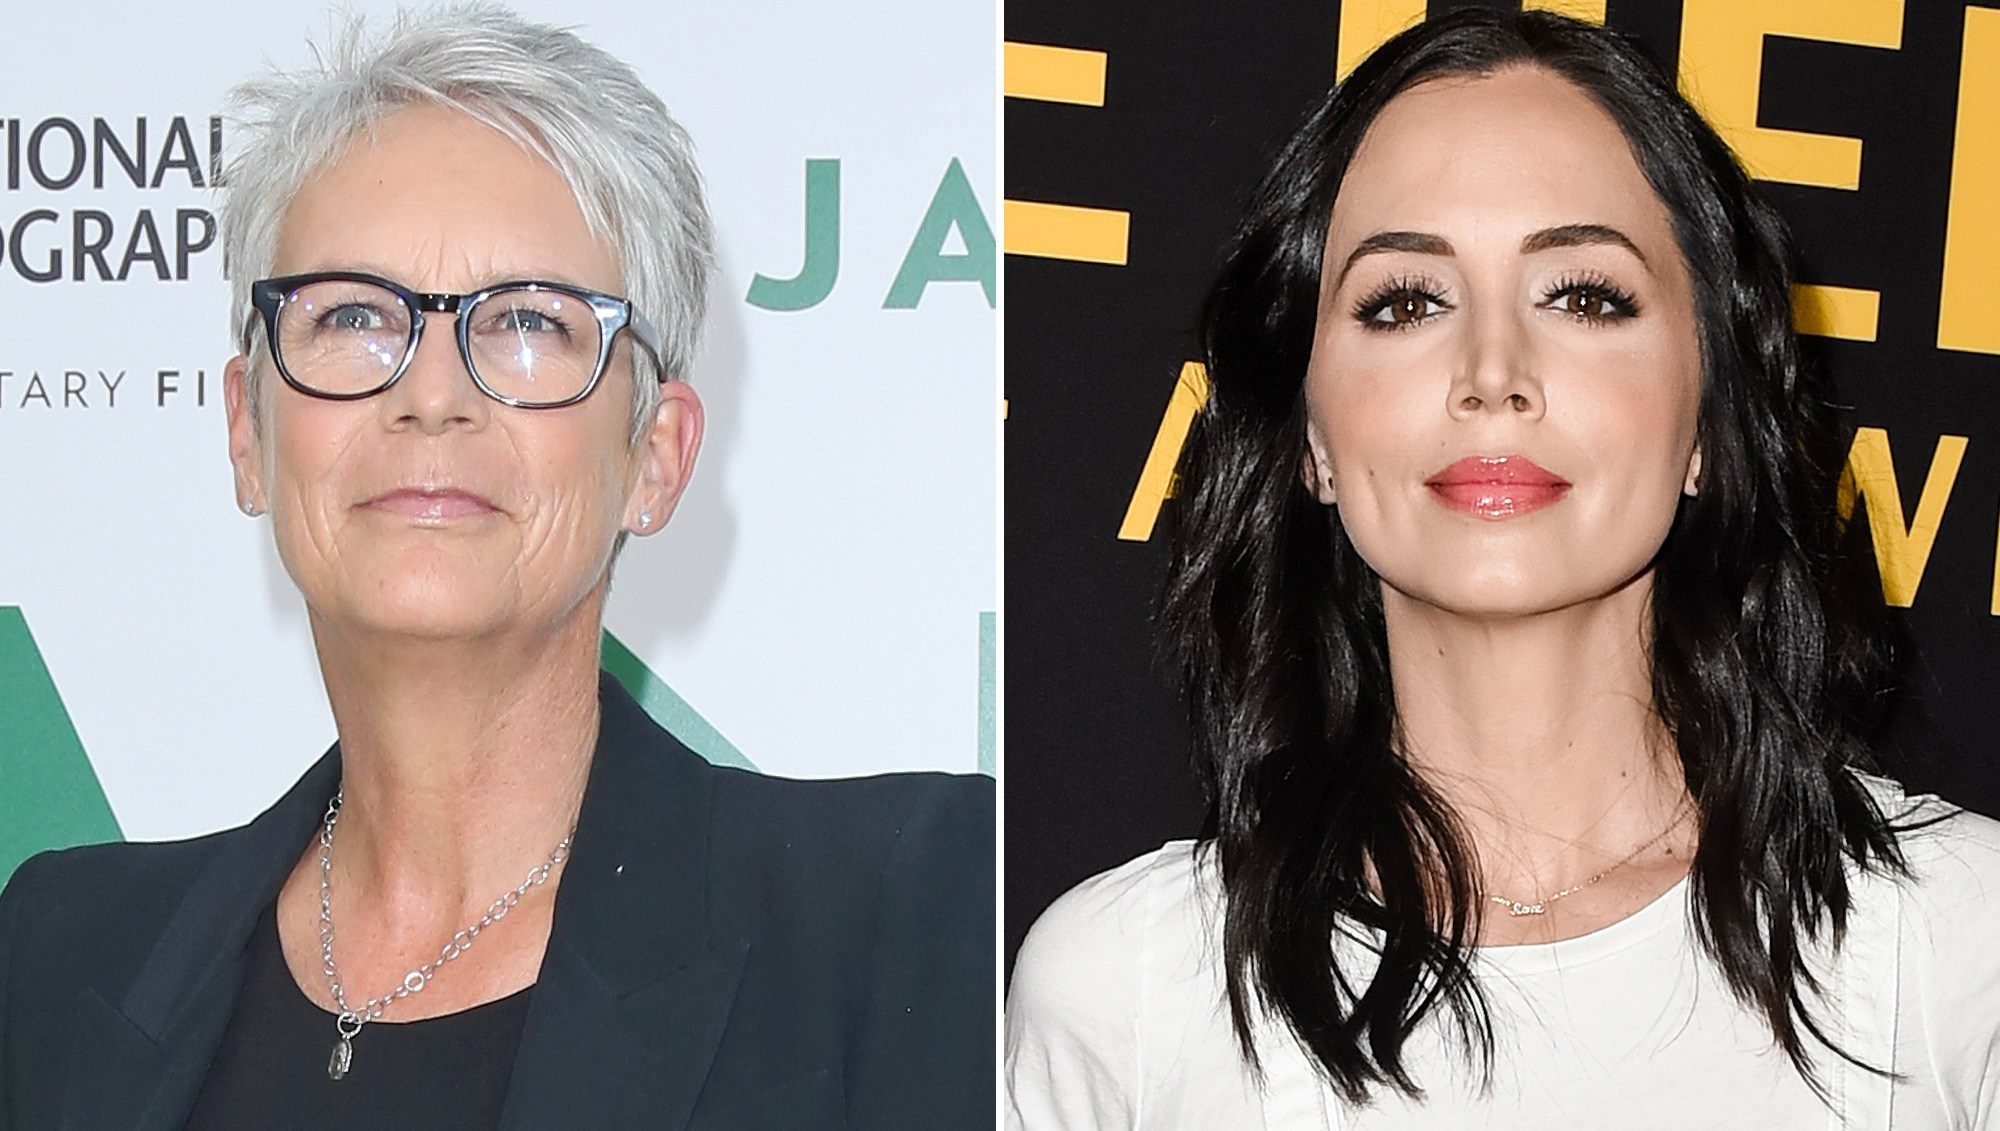 Jamie Lee Curtis, Eliza Dushku, True Lies, Sexual Allegation